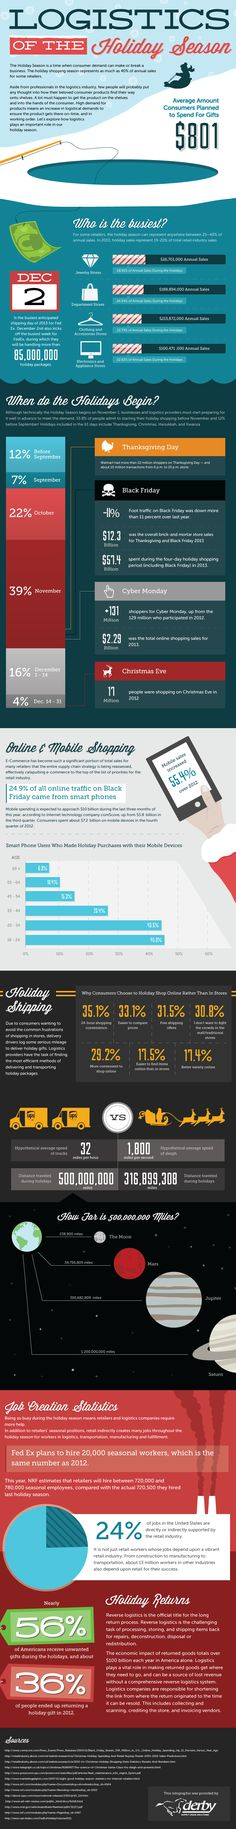 Logistics of the Holiday Season #infographic